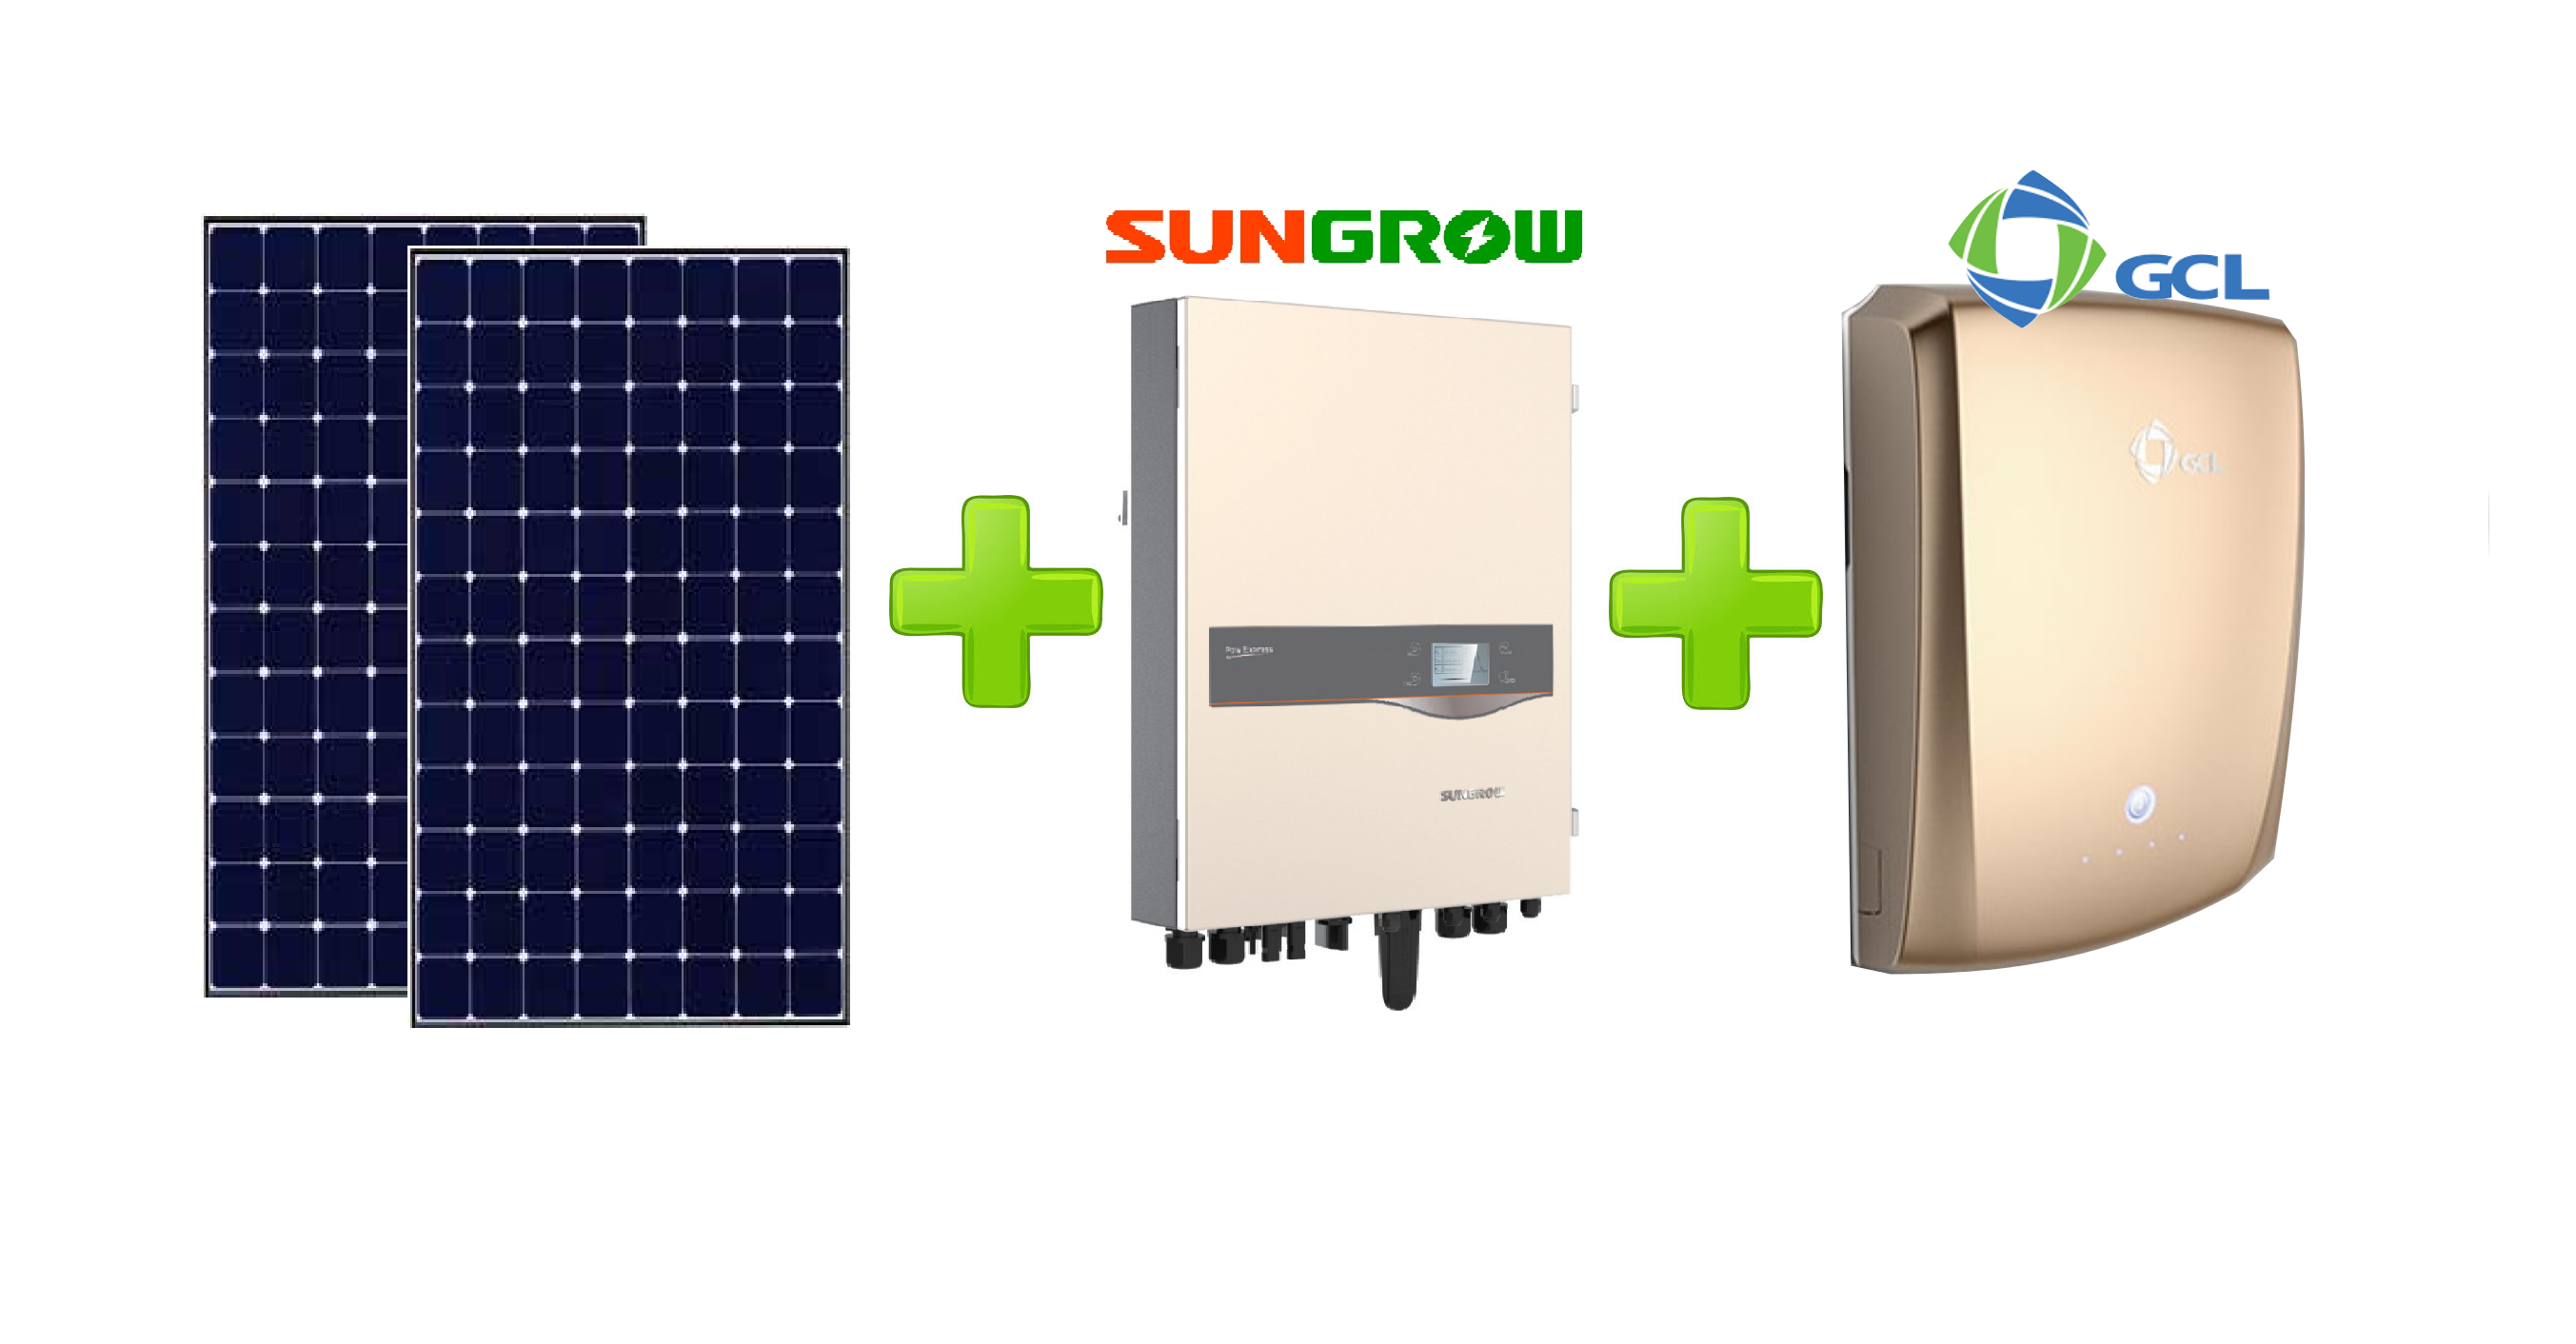 sungrow solar battery offer sydney